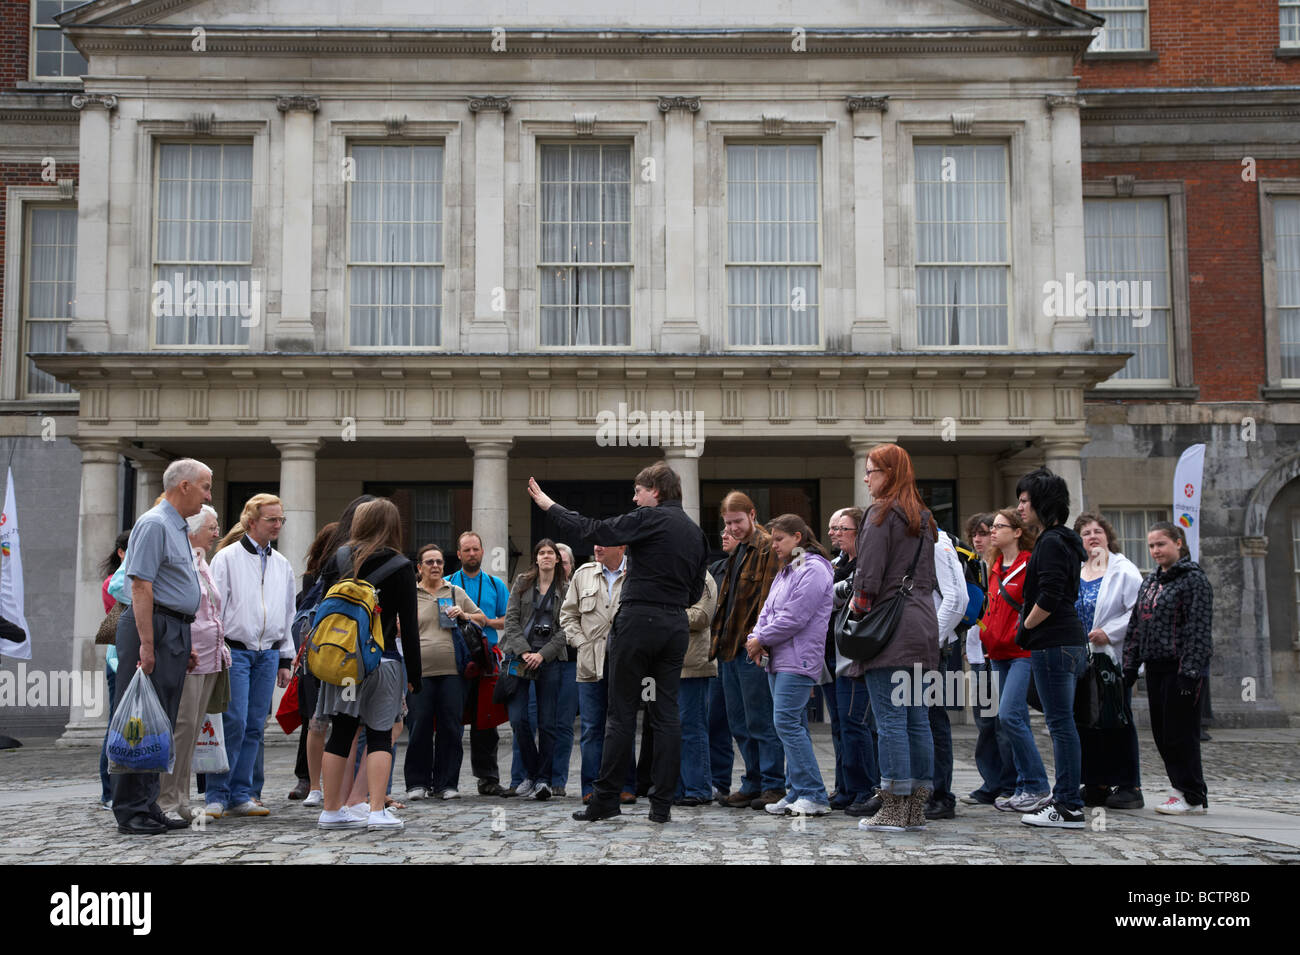 organised tour group of tourists in the the great courtyard upper courtyard in front of the state apartments in - Stock Image